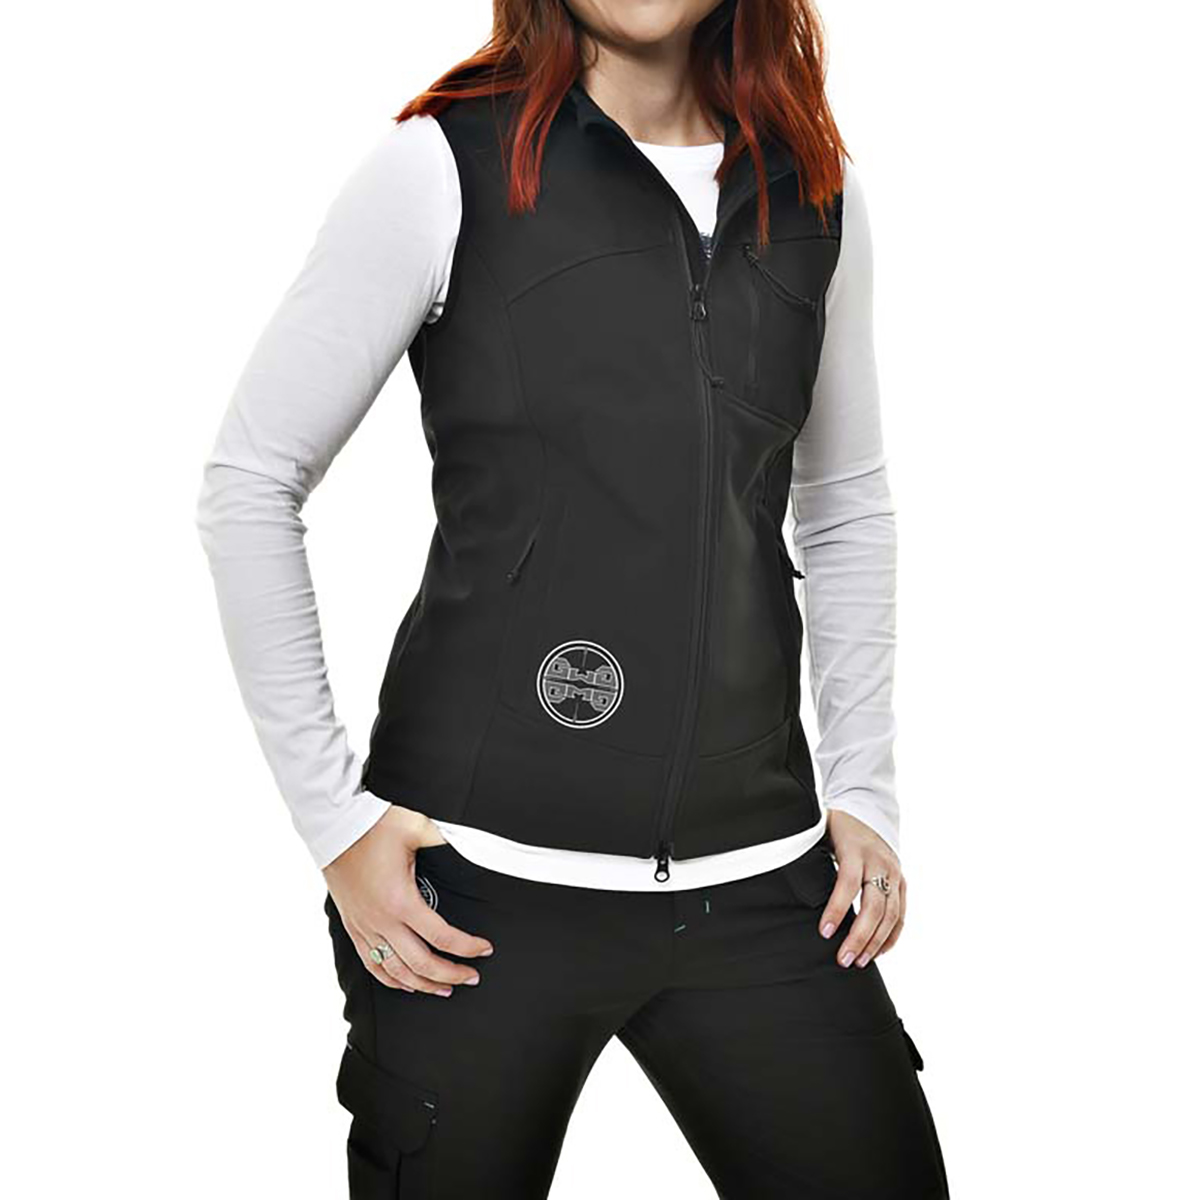 Girls With Guns Guardian Vest